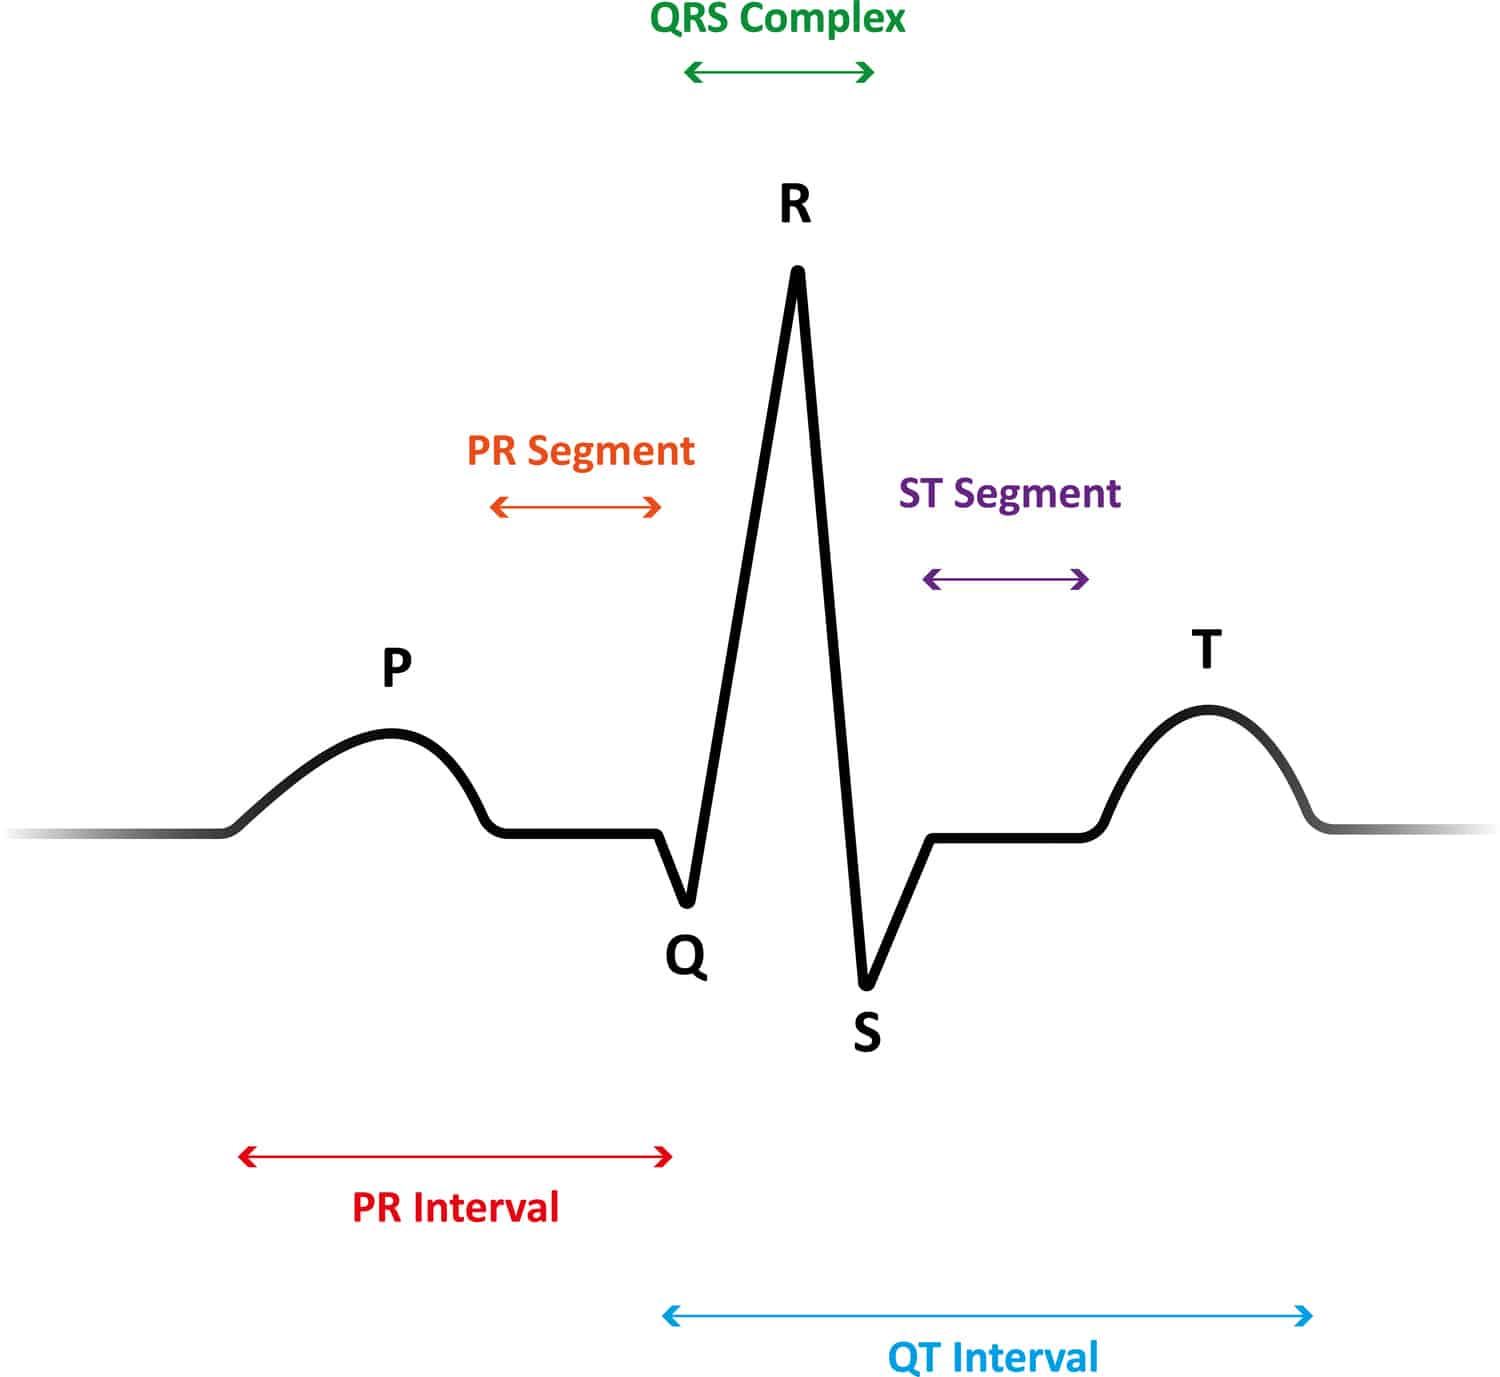 5 Lead Ecg Interpretation Electrocardiogram Tips For